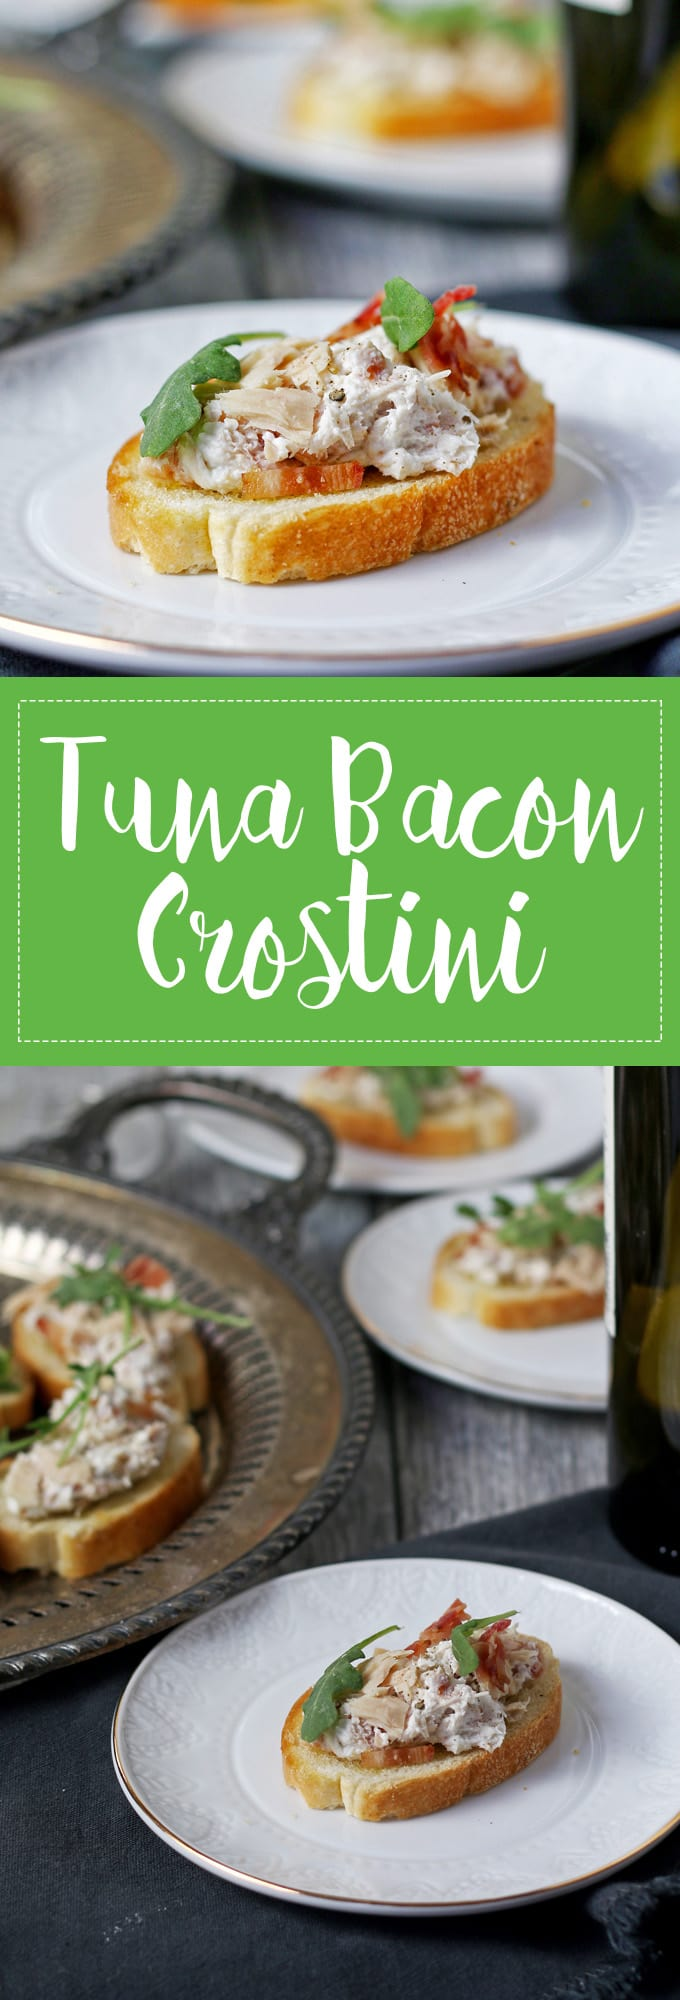 Tuna bacon crostini is a great last minute-appetizer! It only takes 10 minutes to put together and is the perfect finger food for dinner parties. | honeyandbirch.com